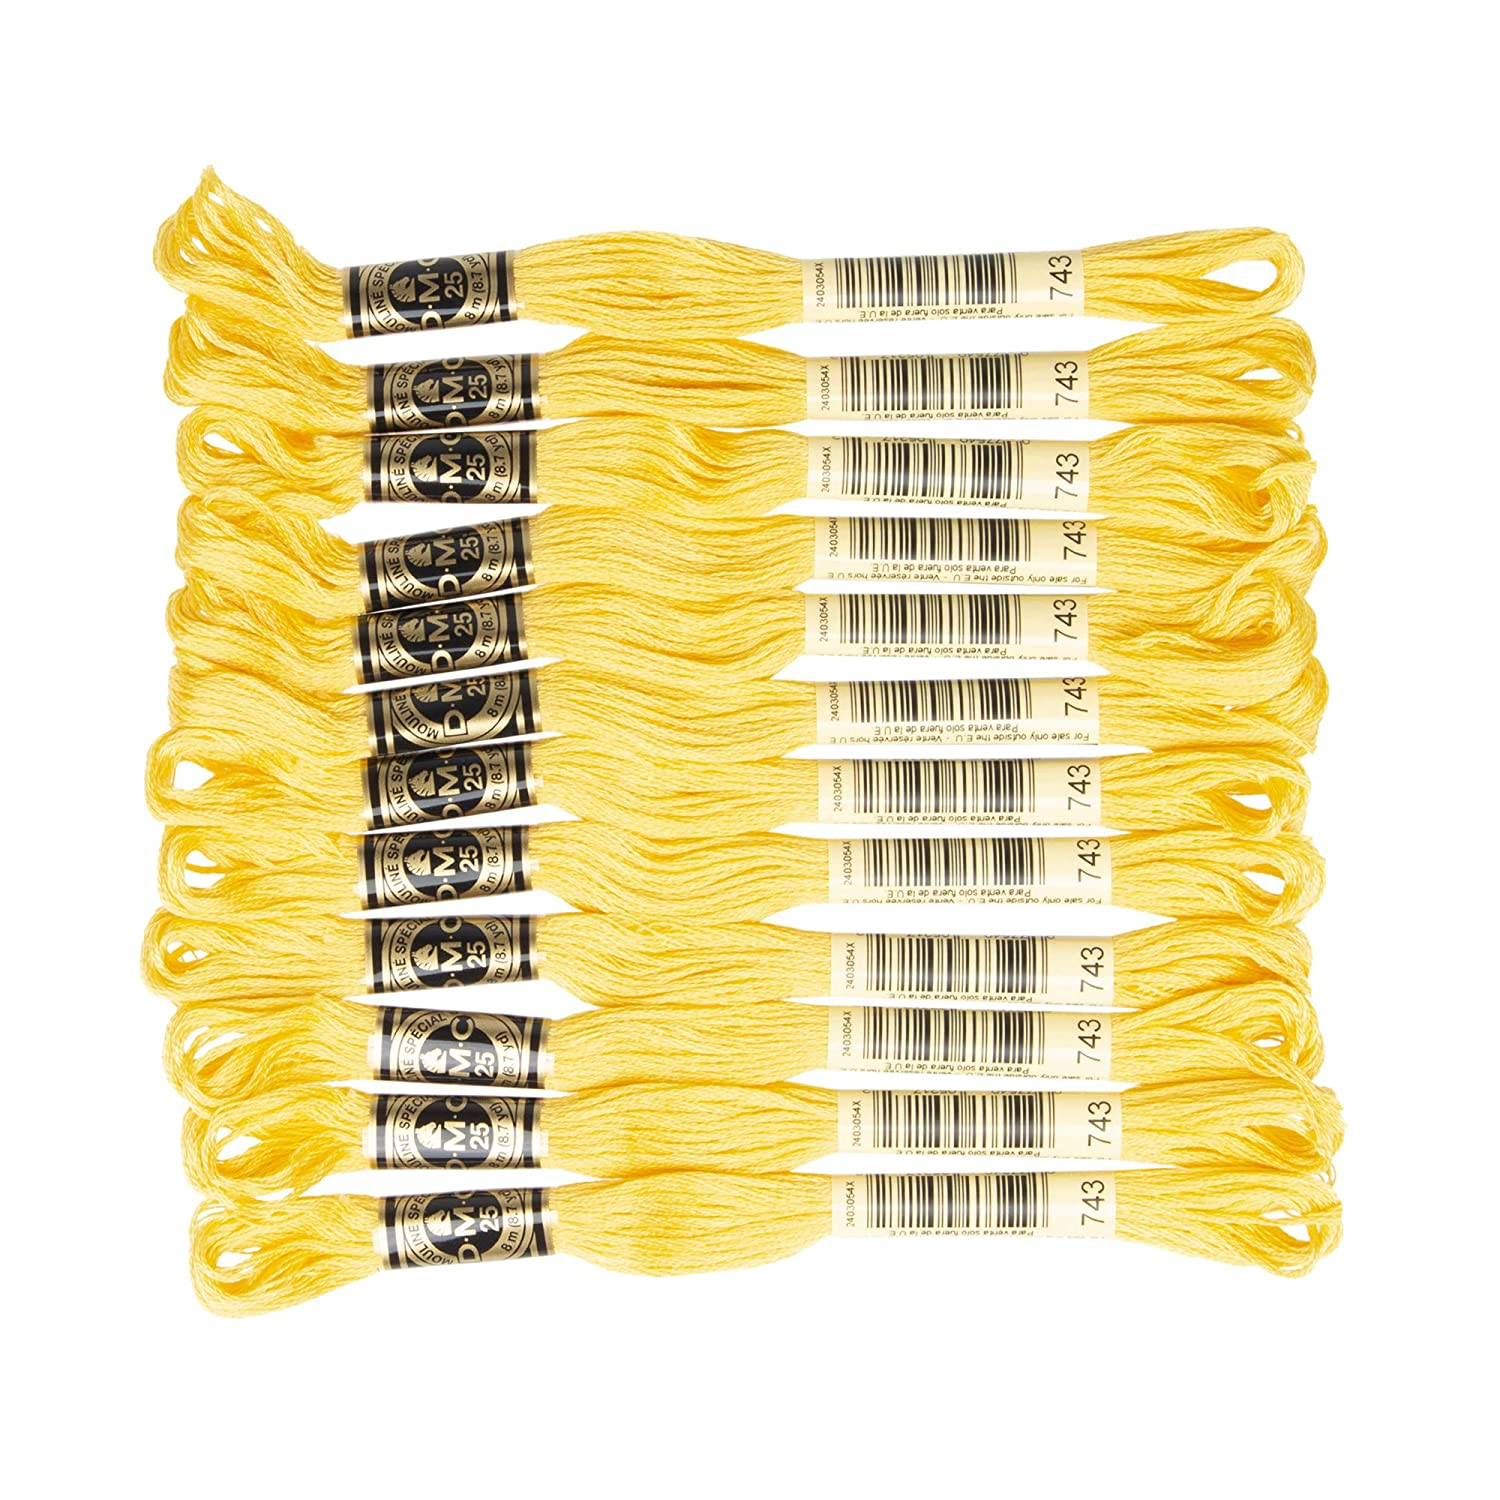 DMC 6-Strand Embroidery Cotton Floss Medium Yellow Pack of 12